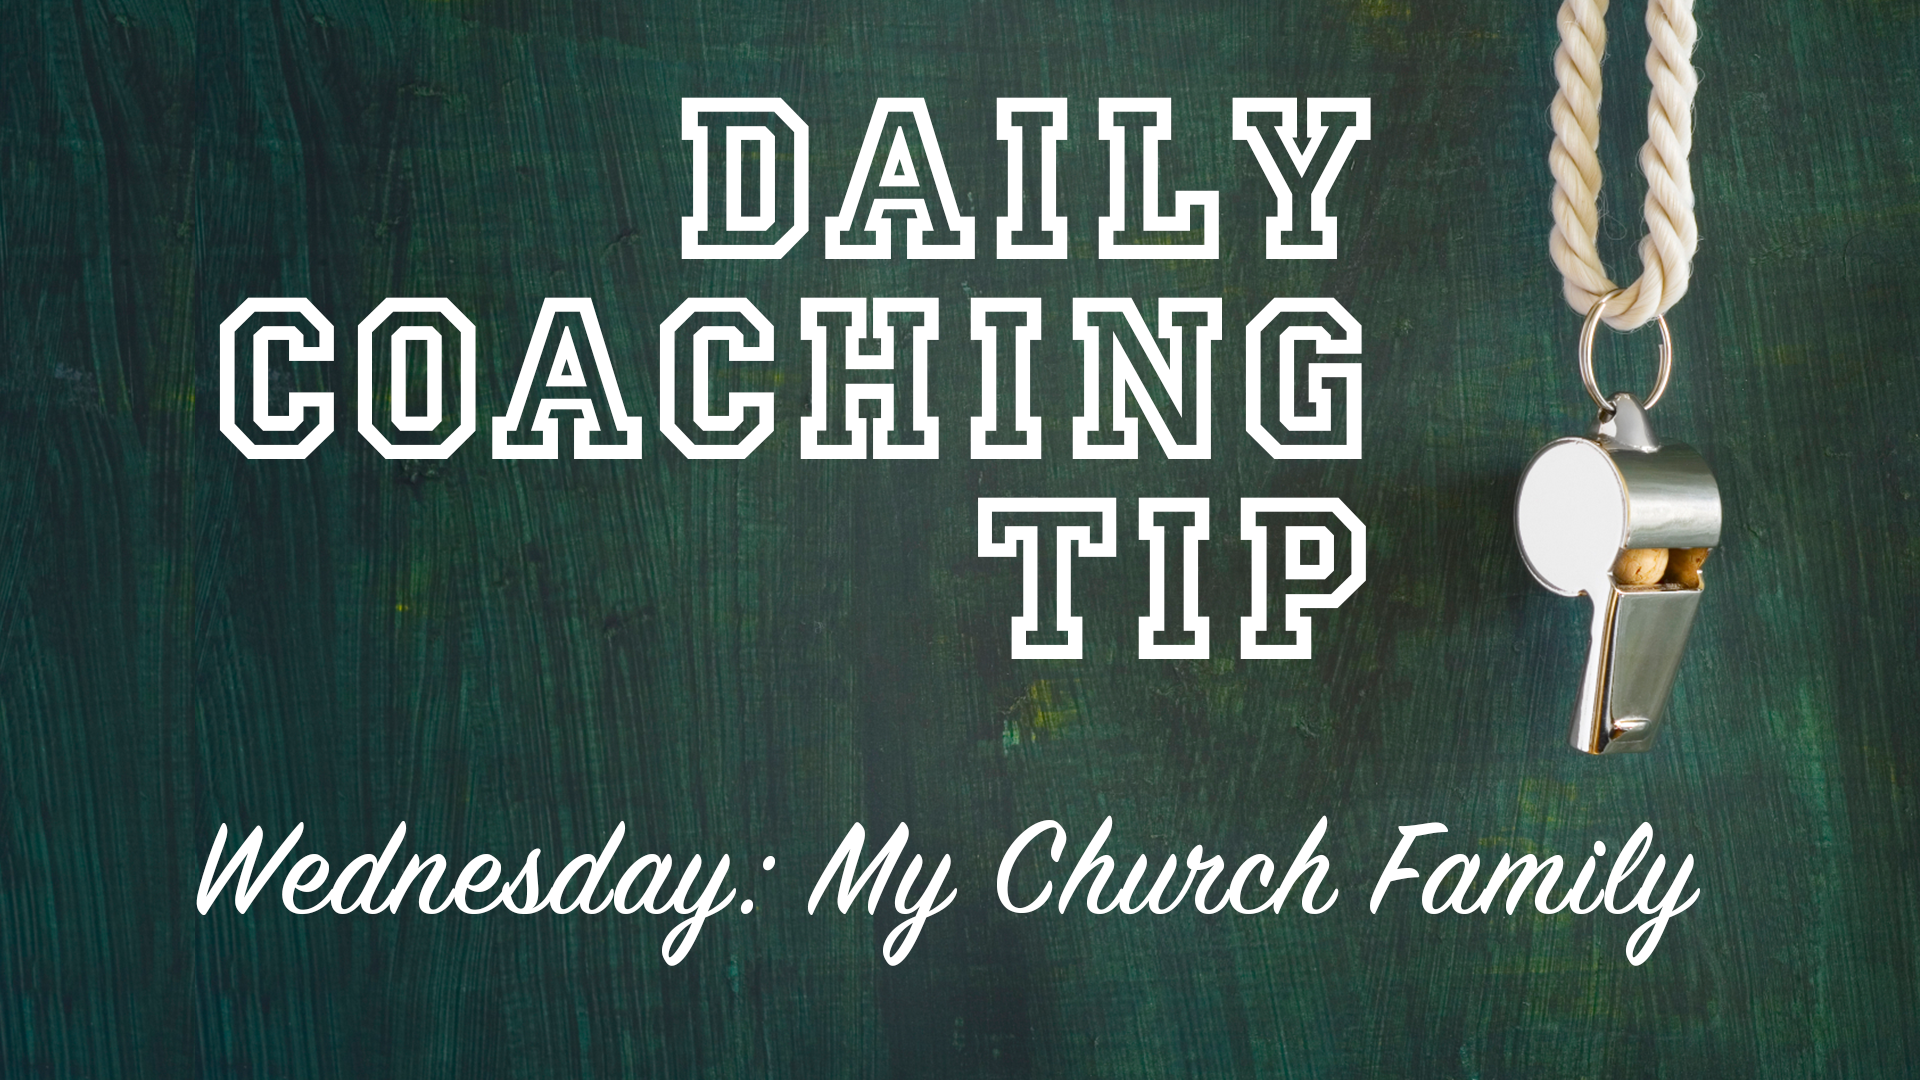 Daily Coaching Tip, Wednesday, May 4, 2016